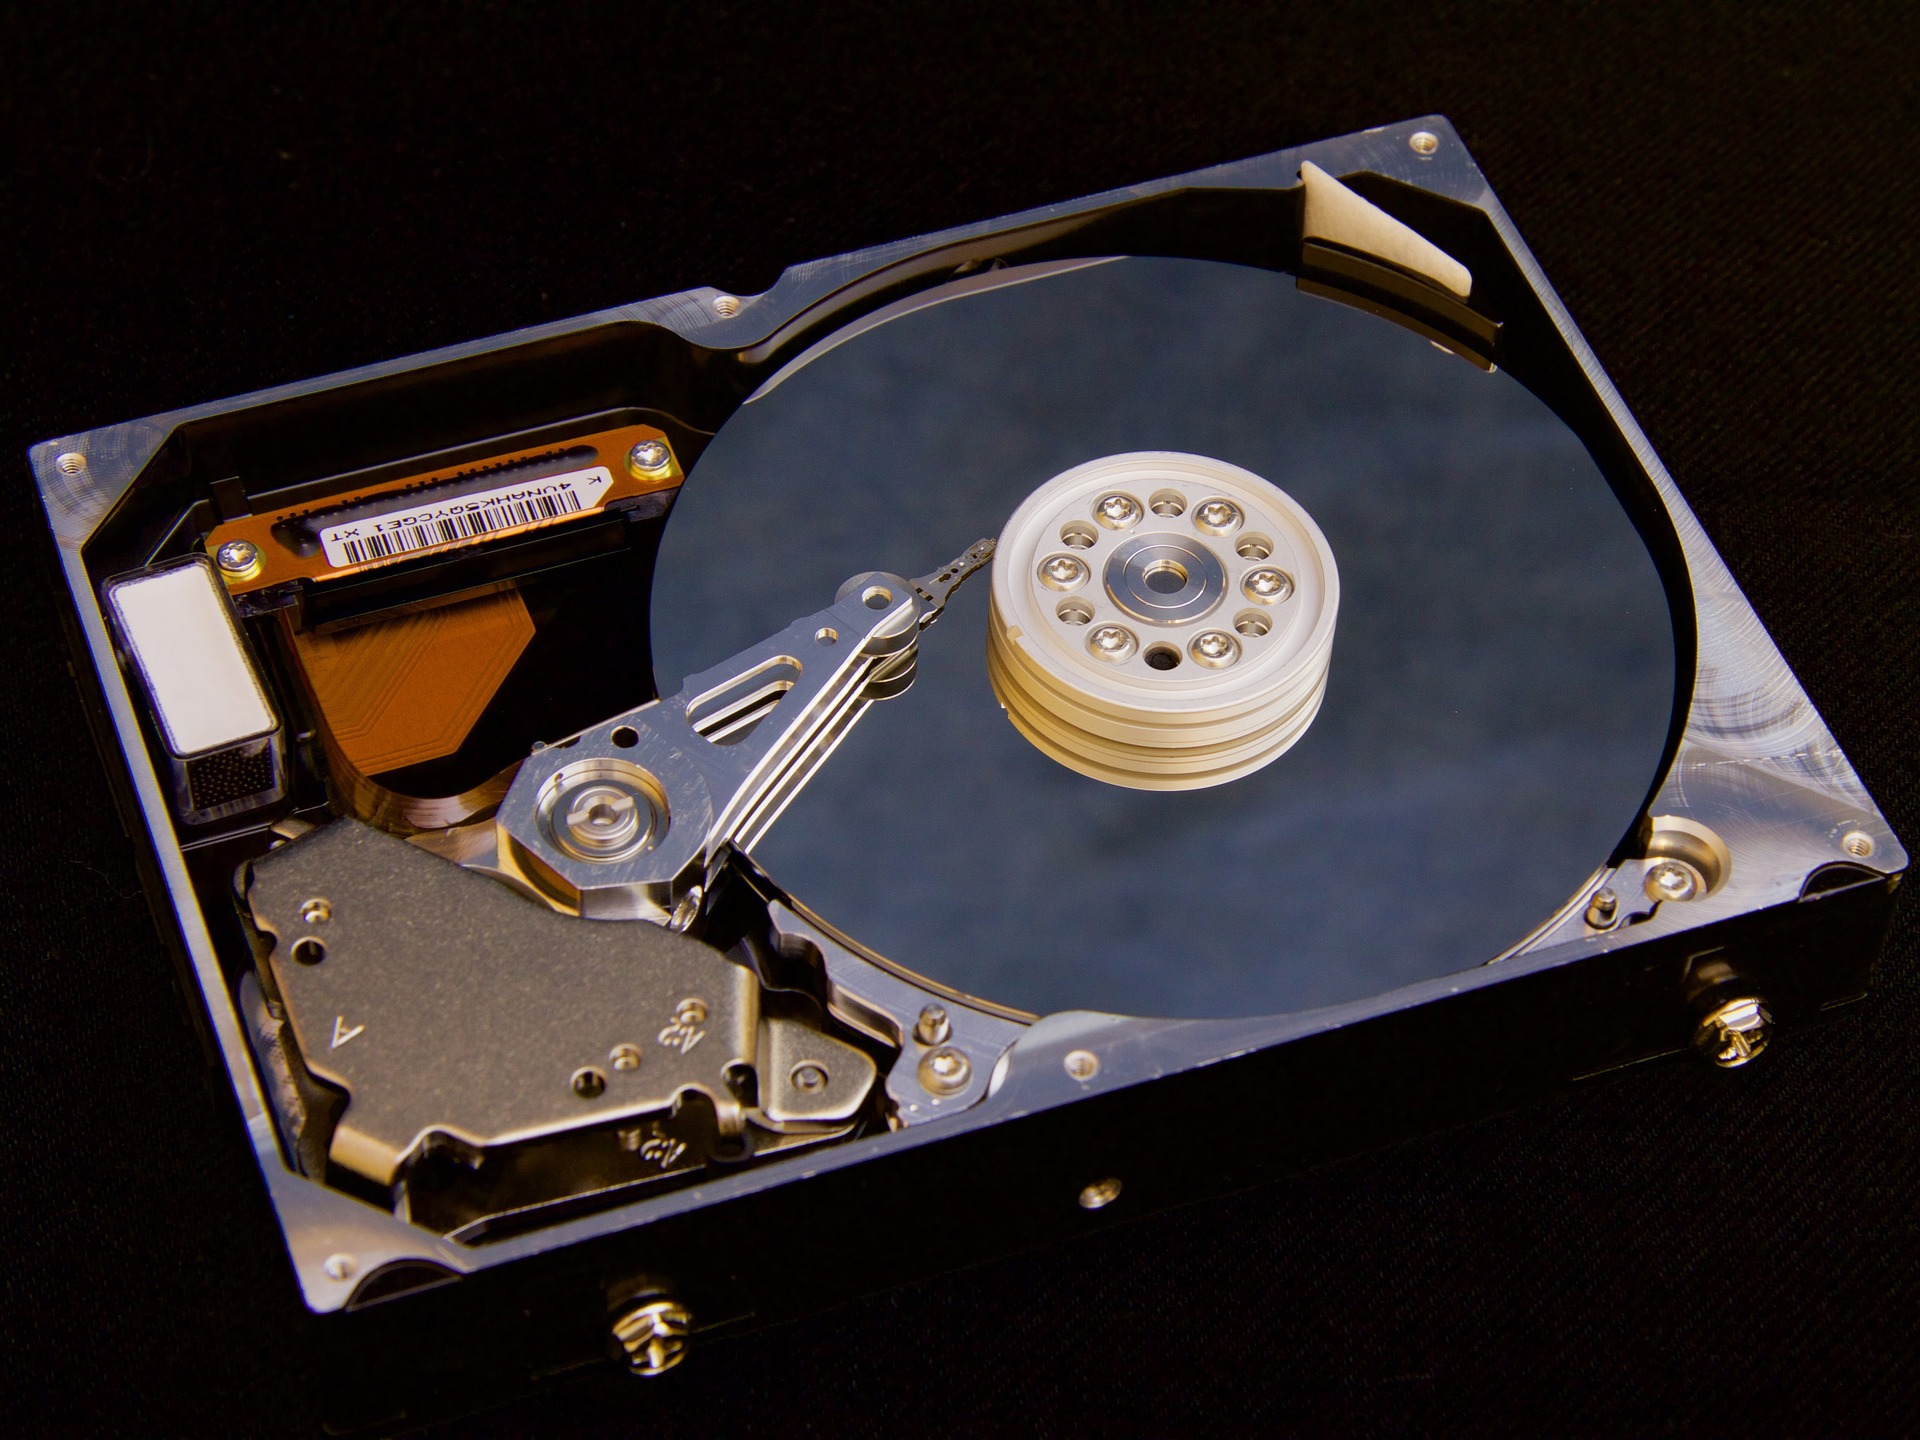 Disk Recovery Software Helps Recovering Lost Files from the Hard Drive - Image 1